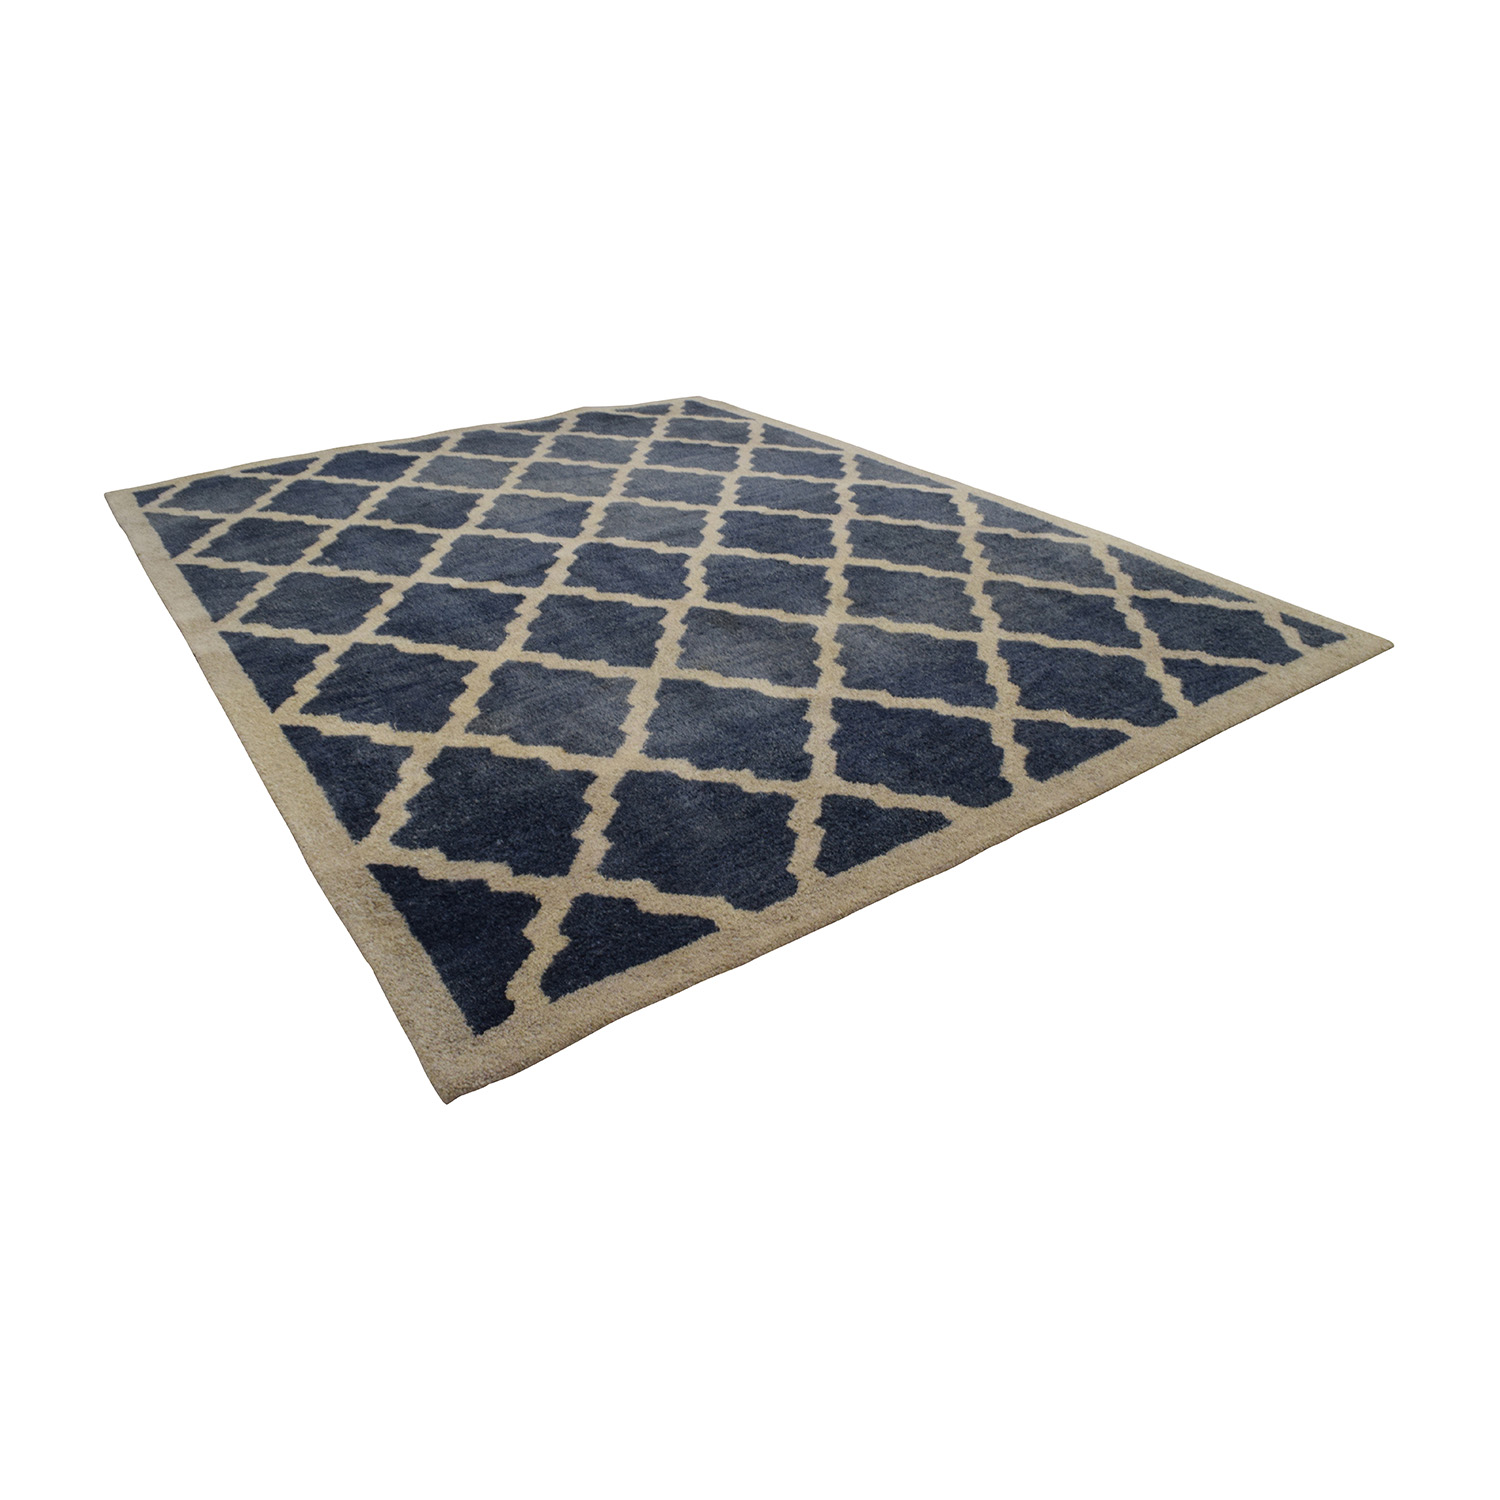 NuLOOM NuLOOM Navy and White Marrakech Trellis Rug dimensions